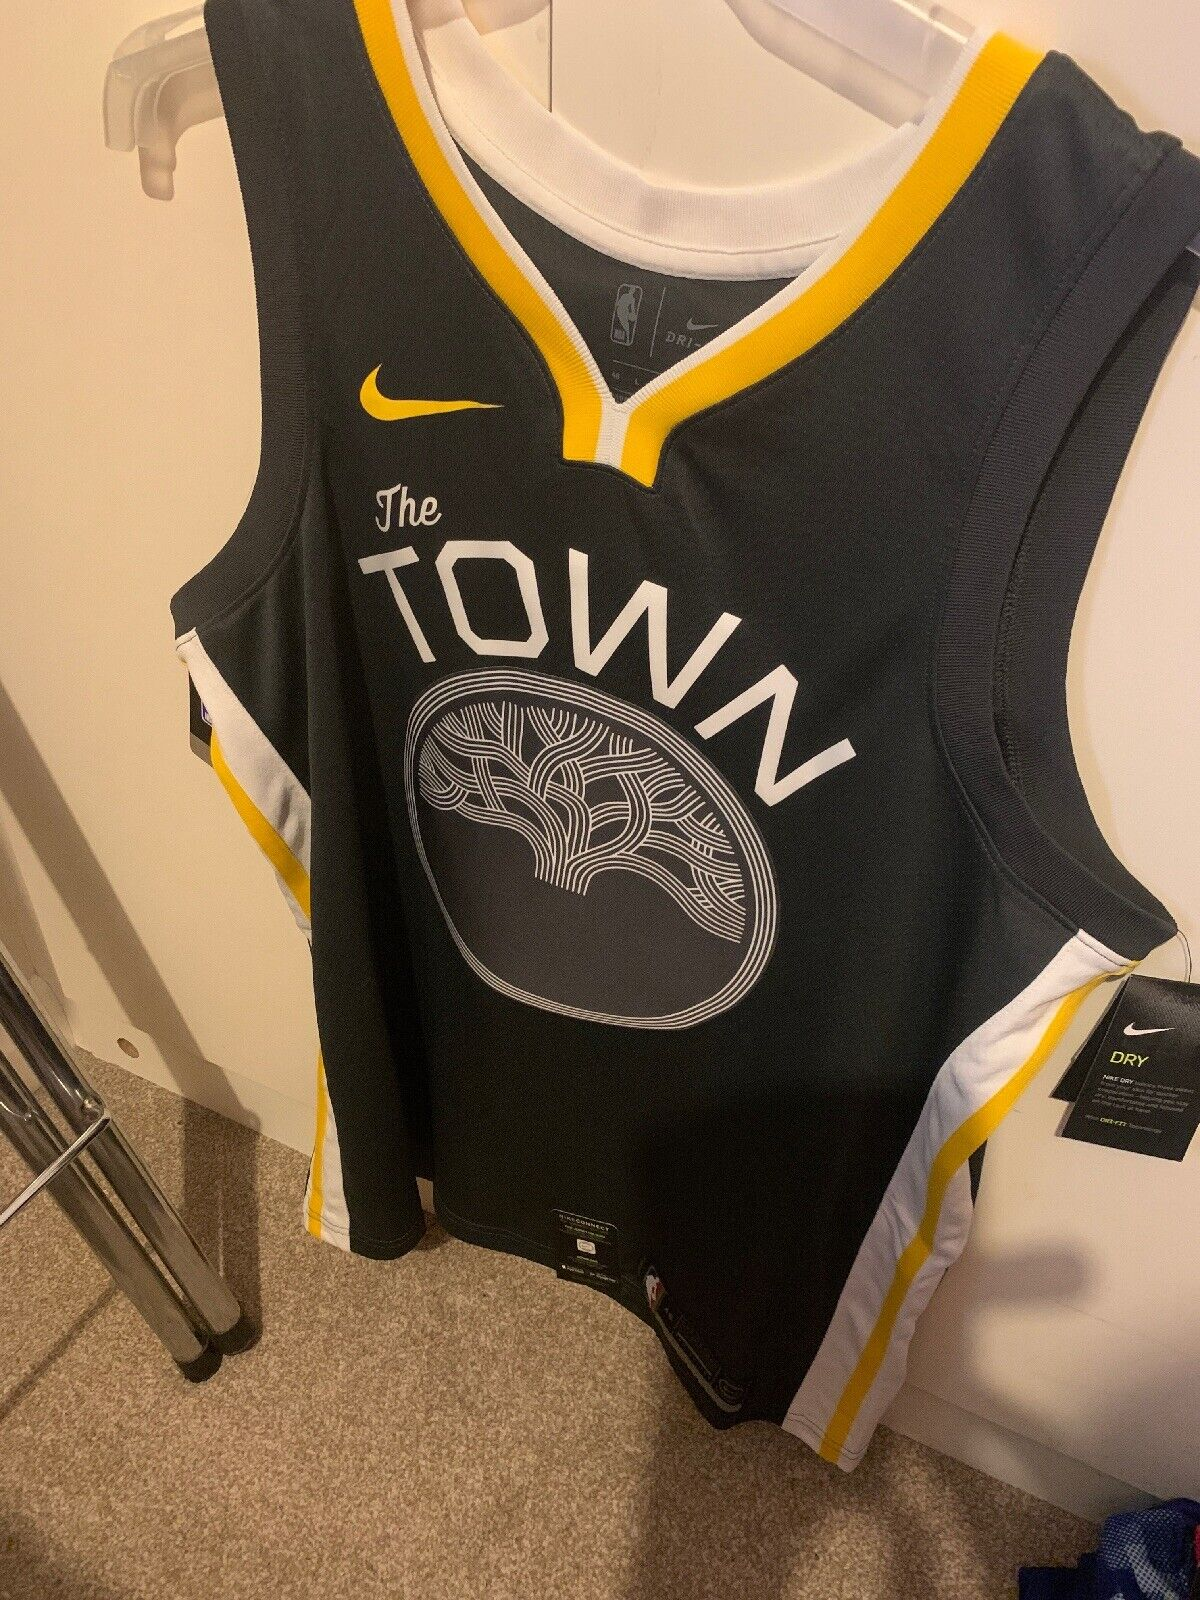 Nike NBA Connected The Town Golden State Warriors Edition Jersey L